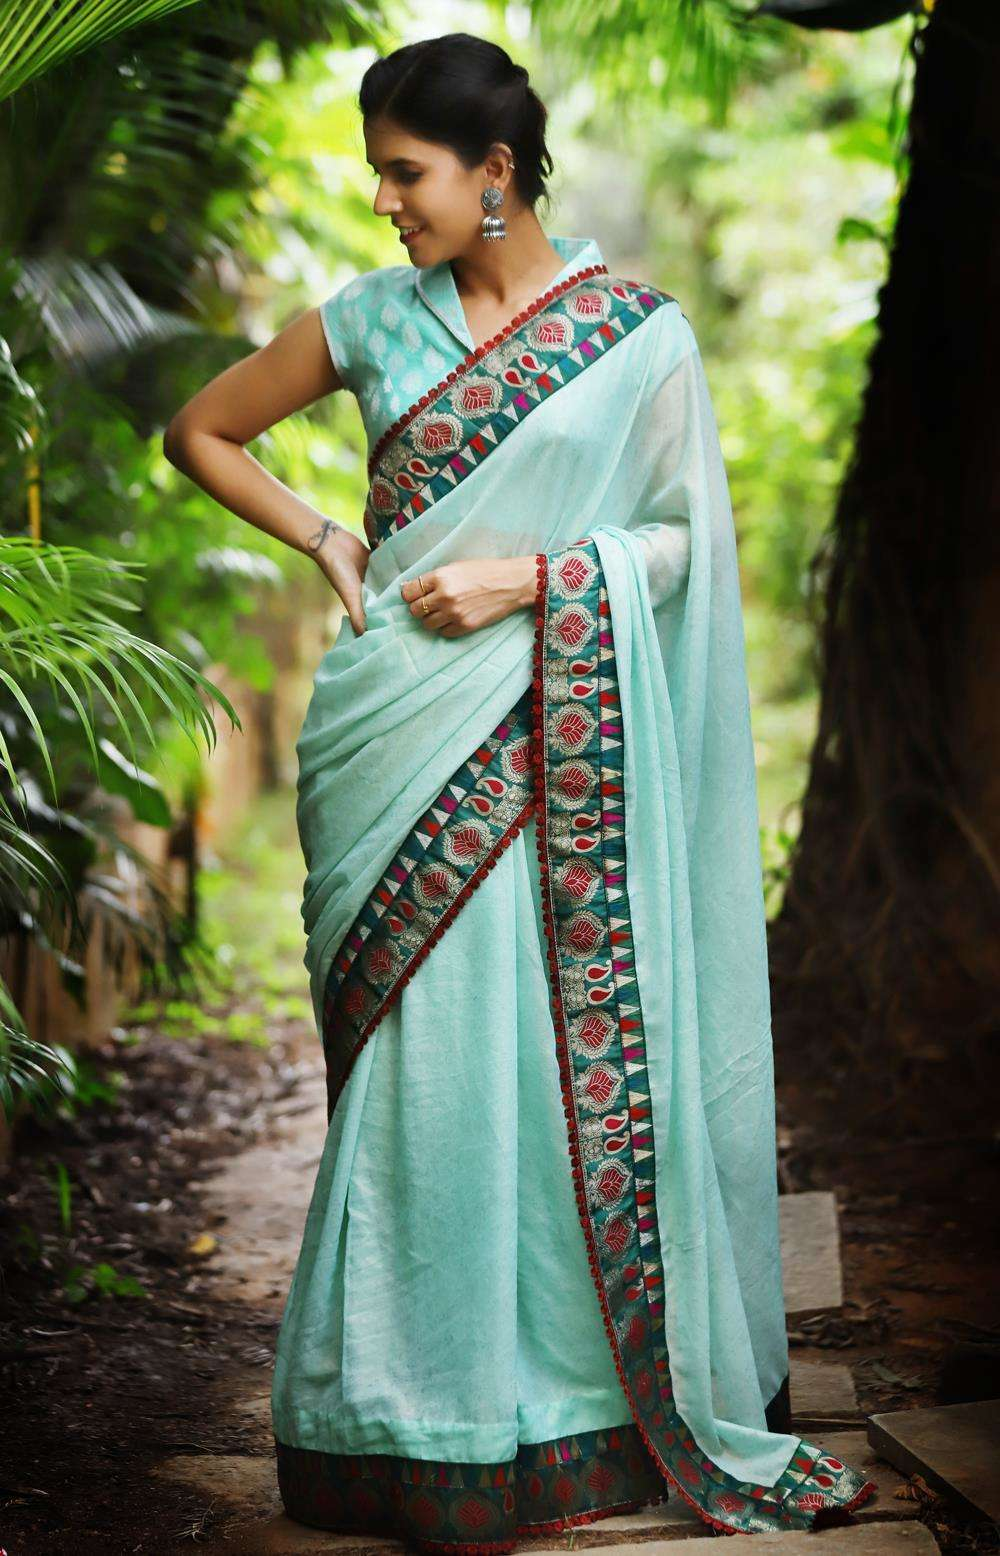 Sea green shimmer foil georgette saree with green banaras brocade border and maroon lace edging - House of Blouse